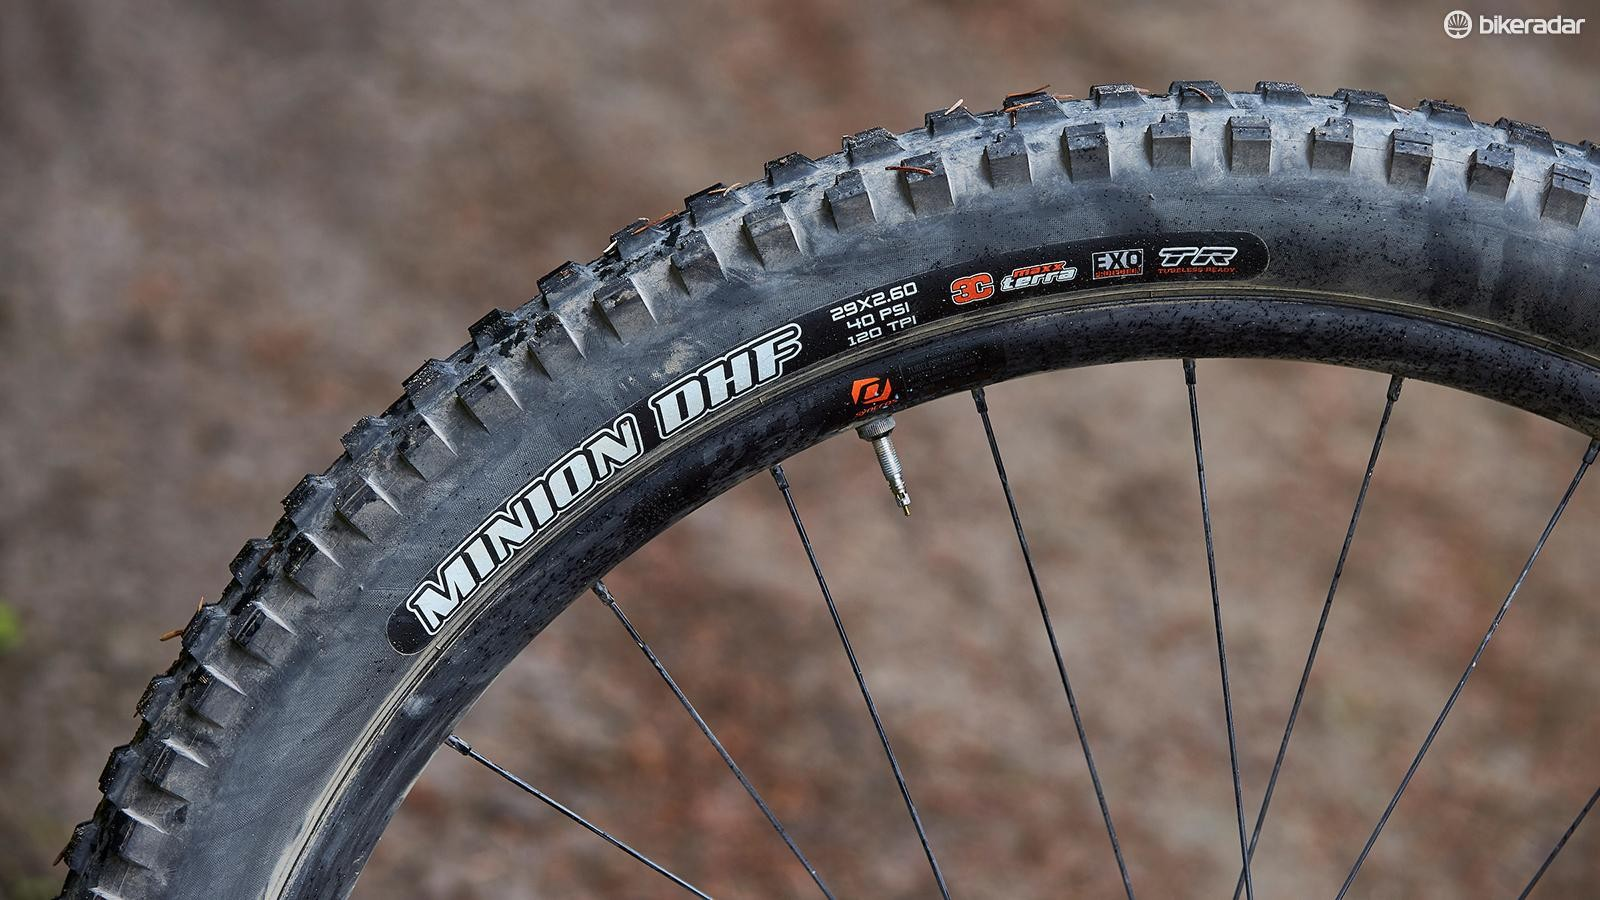 Massive 29x2.6in Maxxis rubber offers a serious amount of traction and comfort on really rough terrain